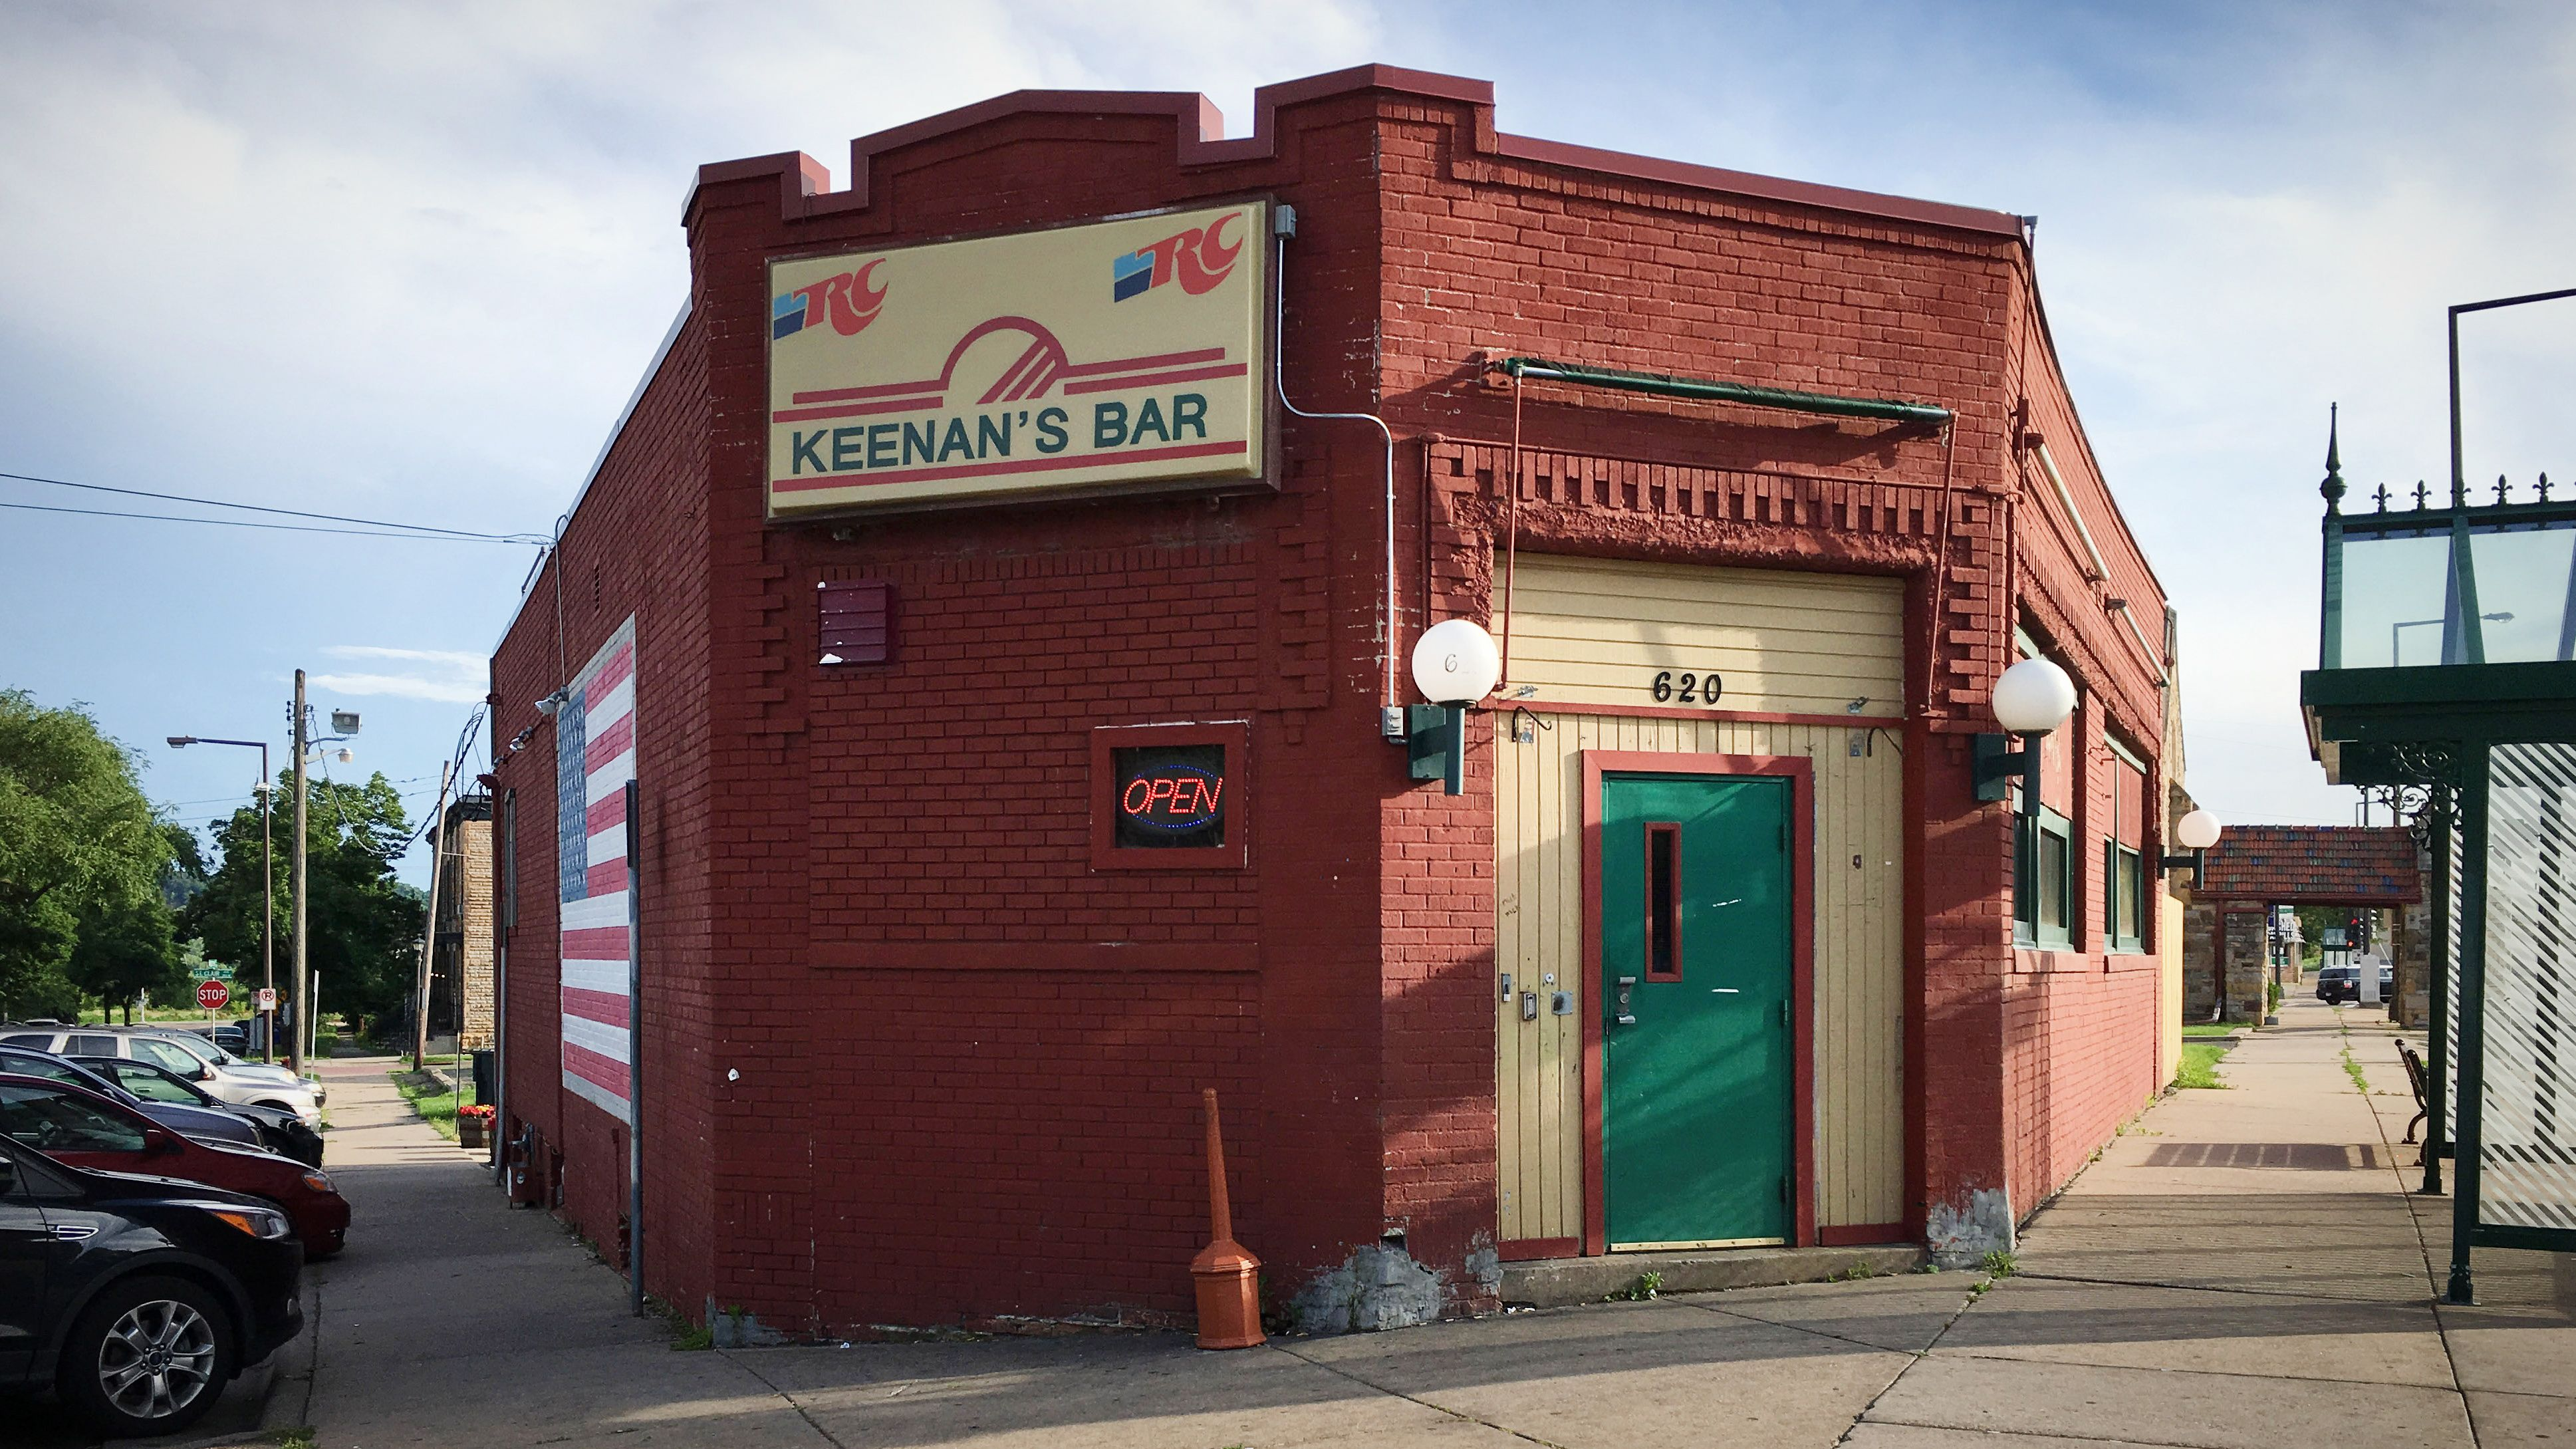 Dip into one of these 8 east metro dive bars with great